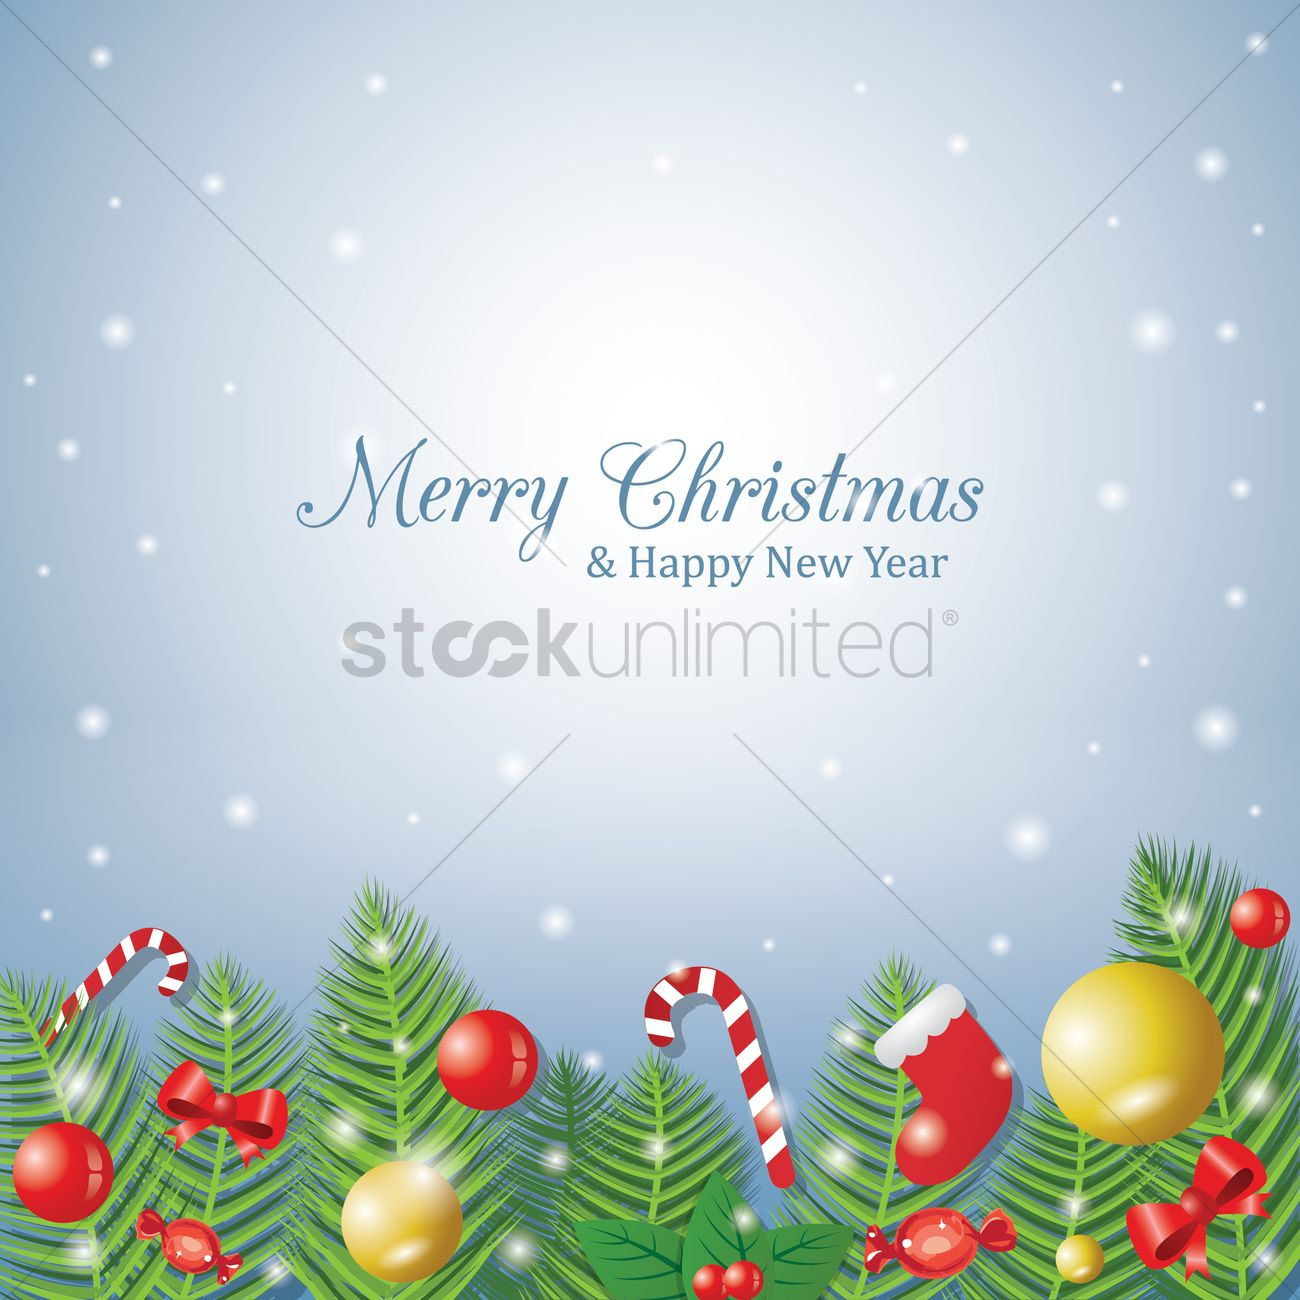 Free Merry Christmas Images.Free Merry Christmas Card Vector Image 1499055